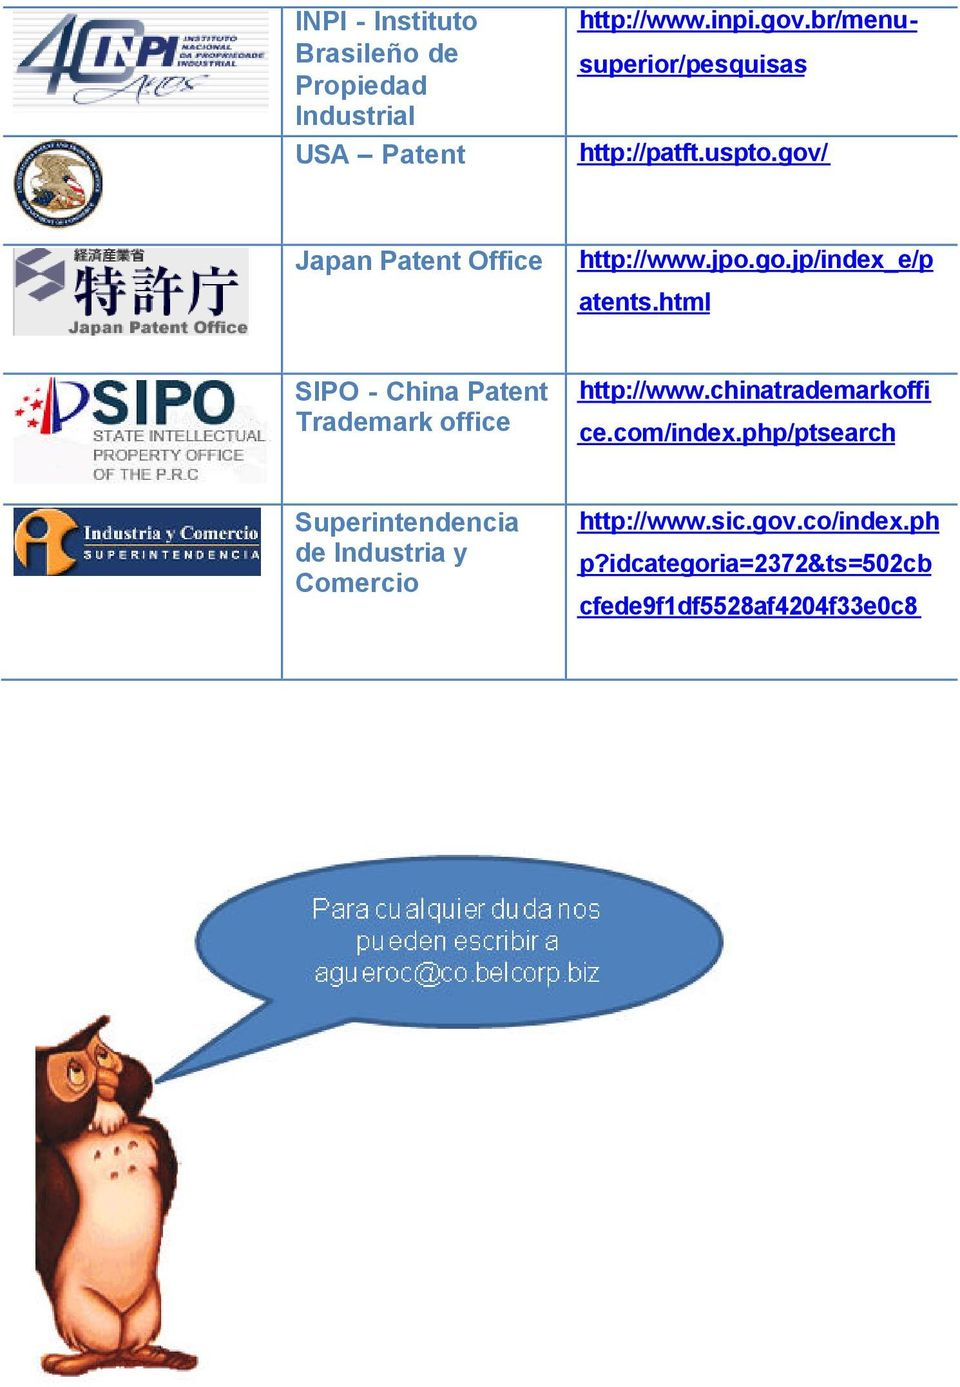 html SIPO - China Patent Trademark office http://www.chinatrademarkoffi ce.com/index.